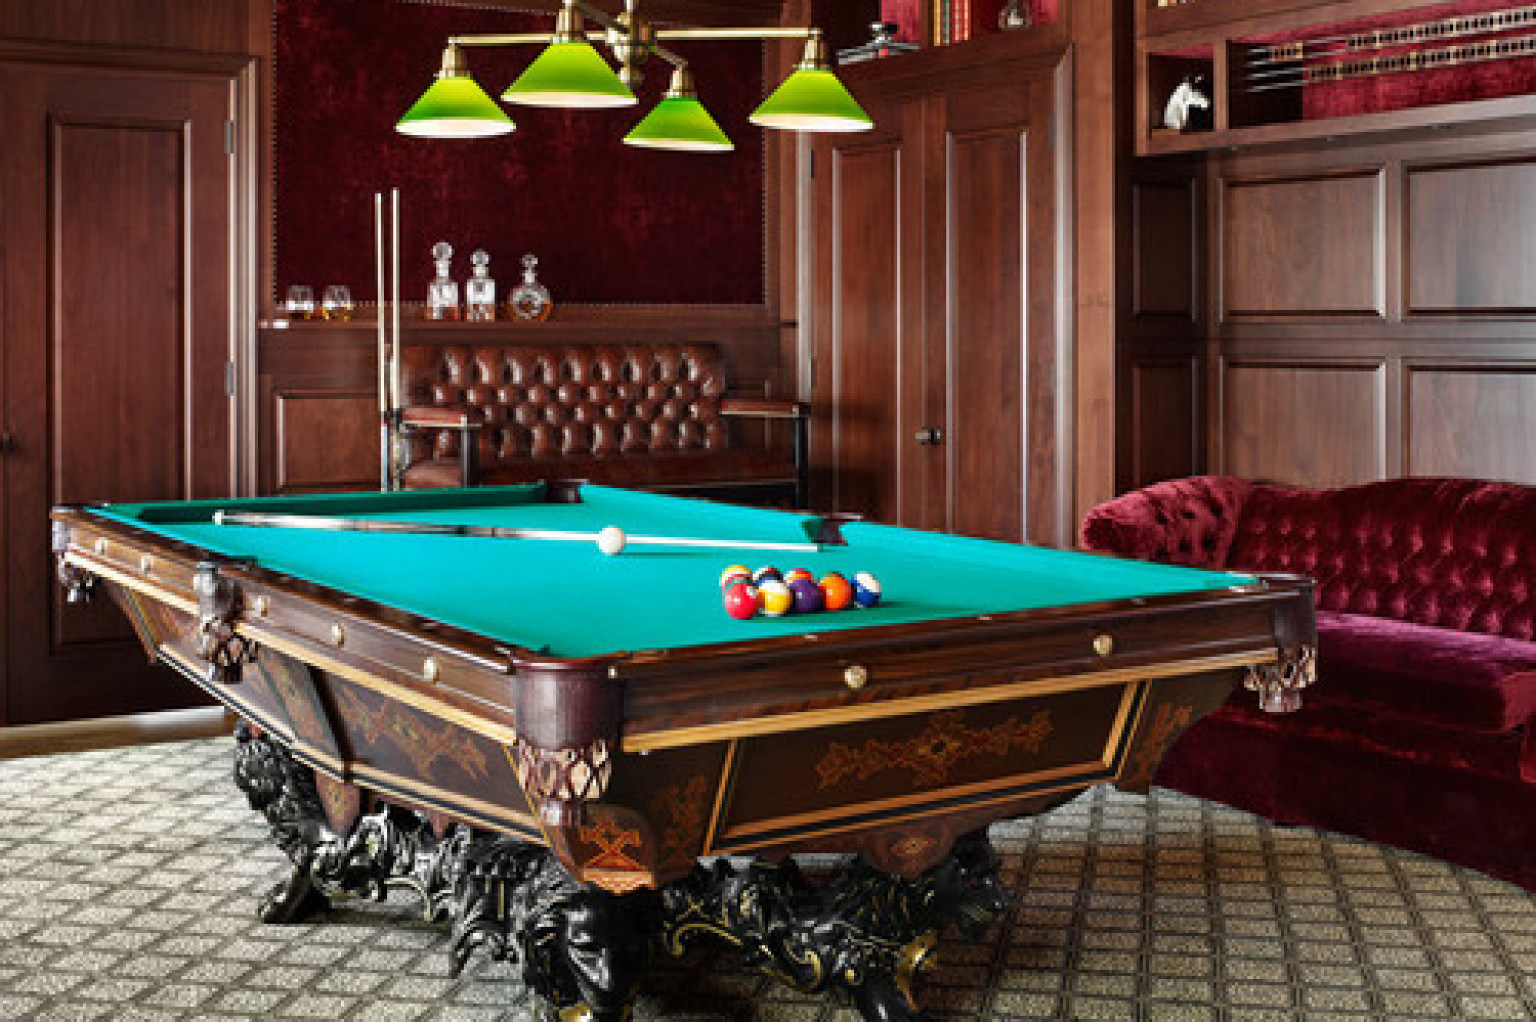 15 Homes With Amazing Pool Tables That Are Anything But An